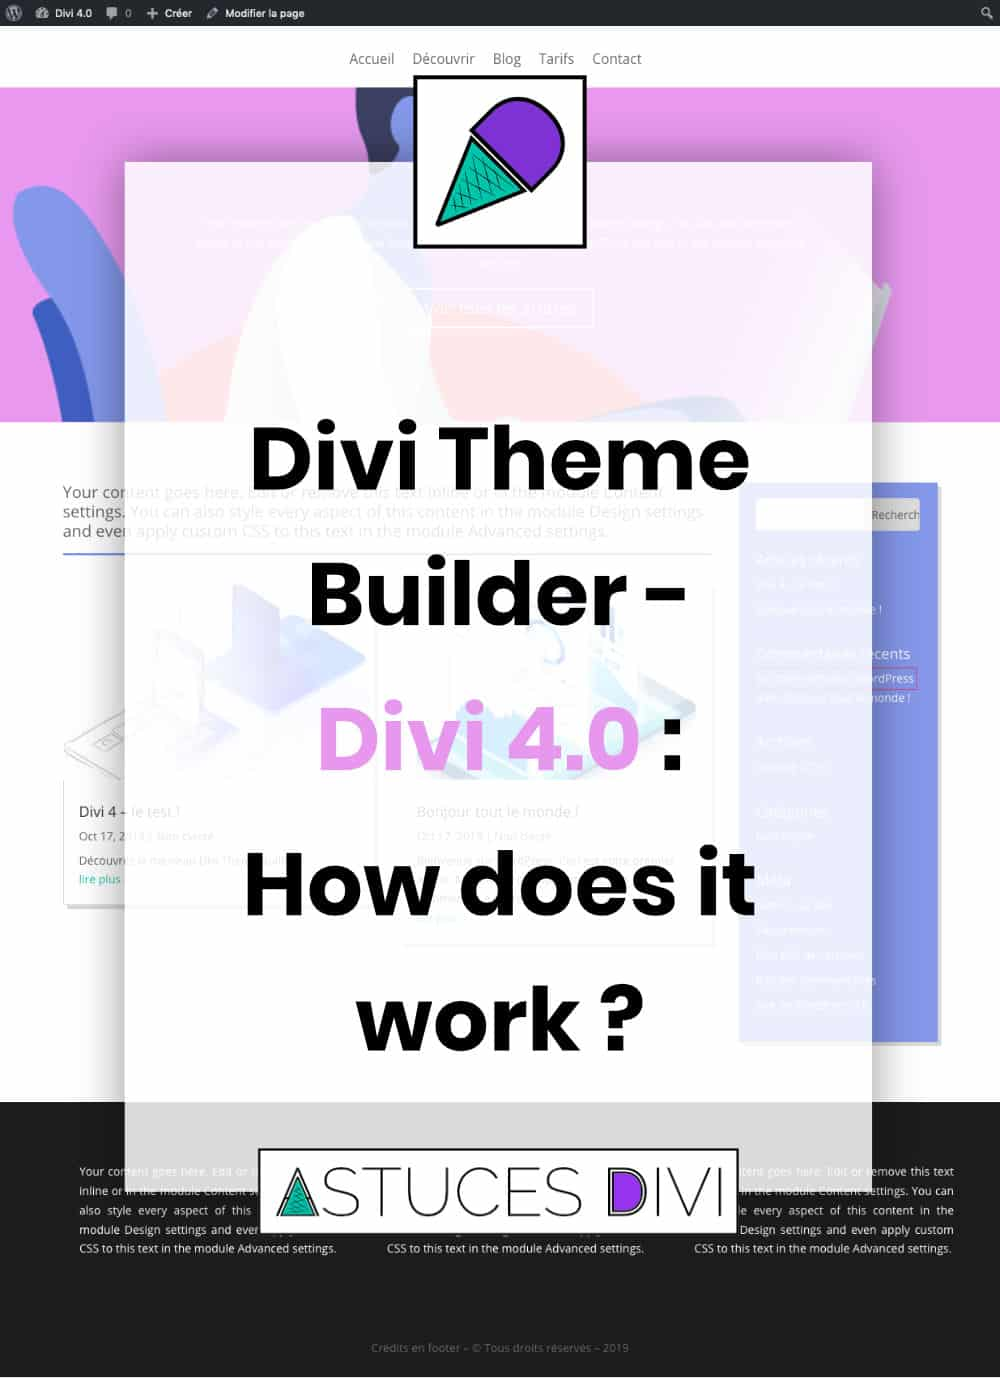 how does the Divi Theme Builder works ?